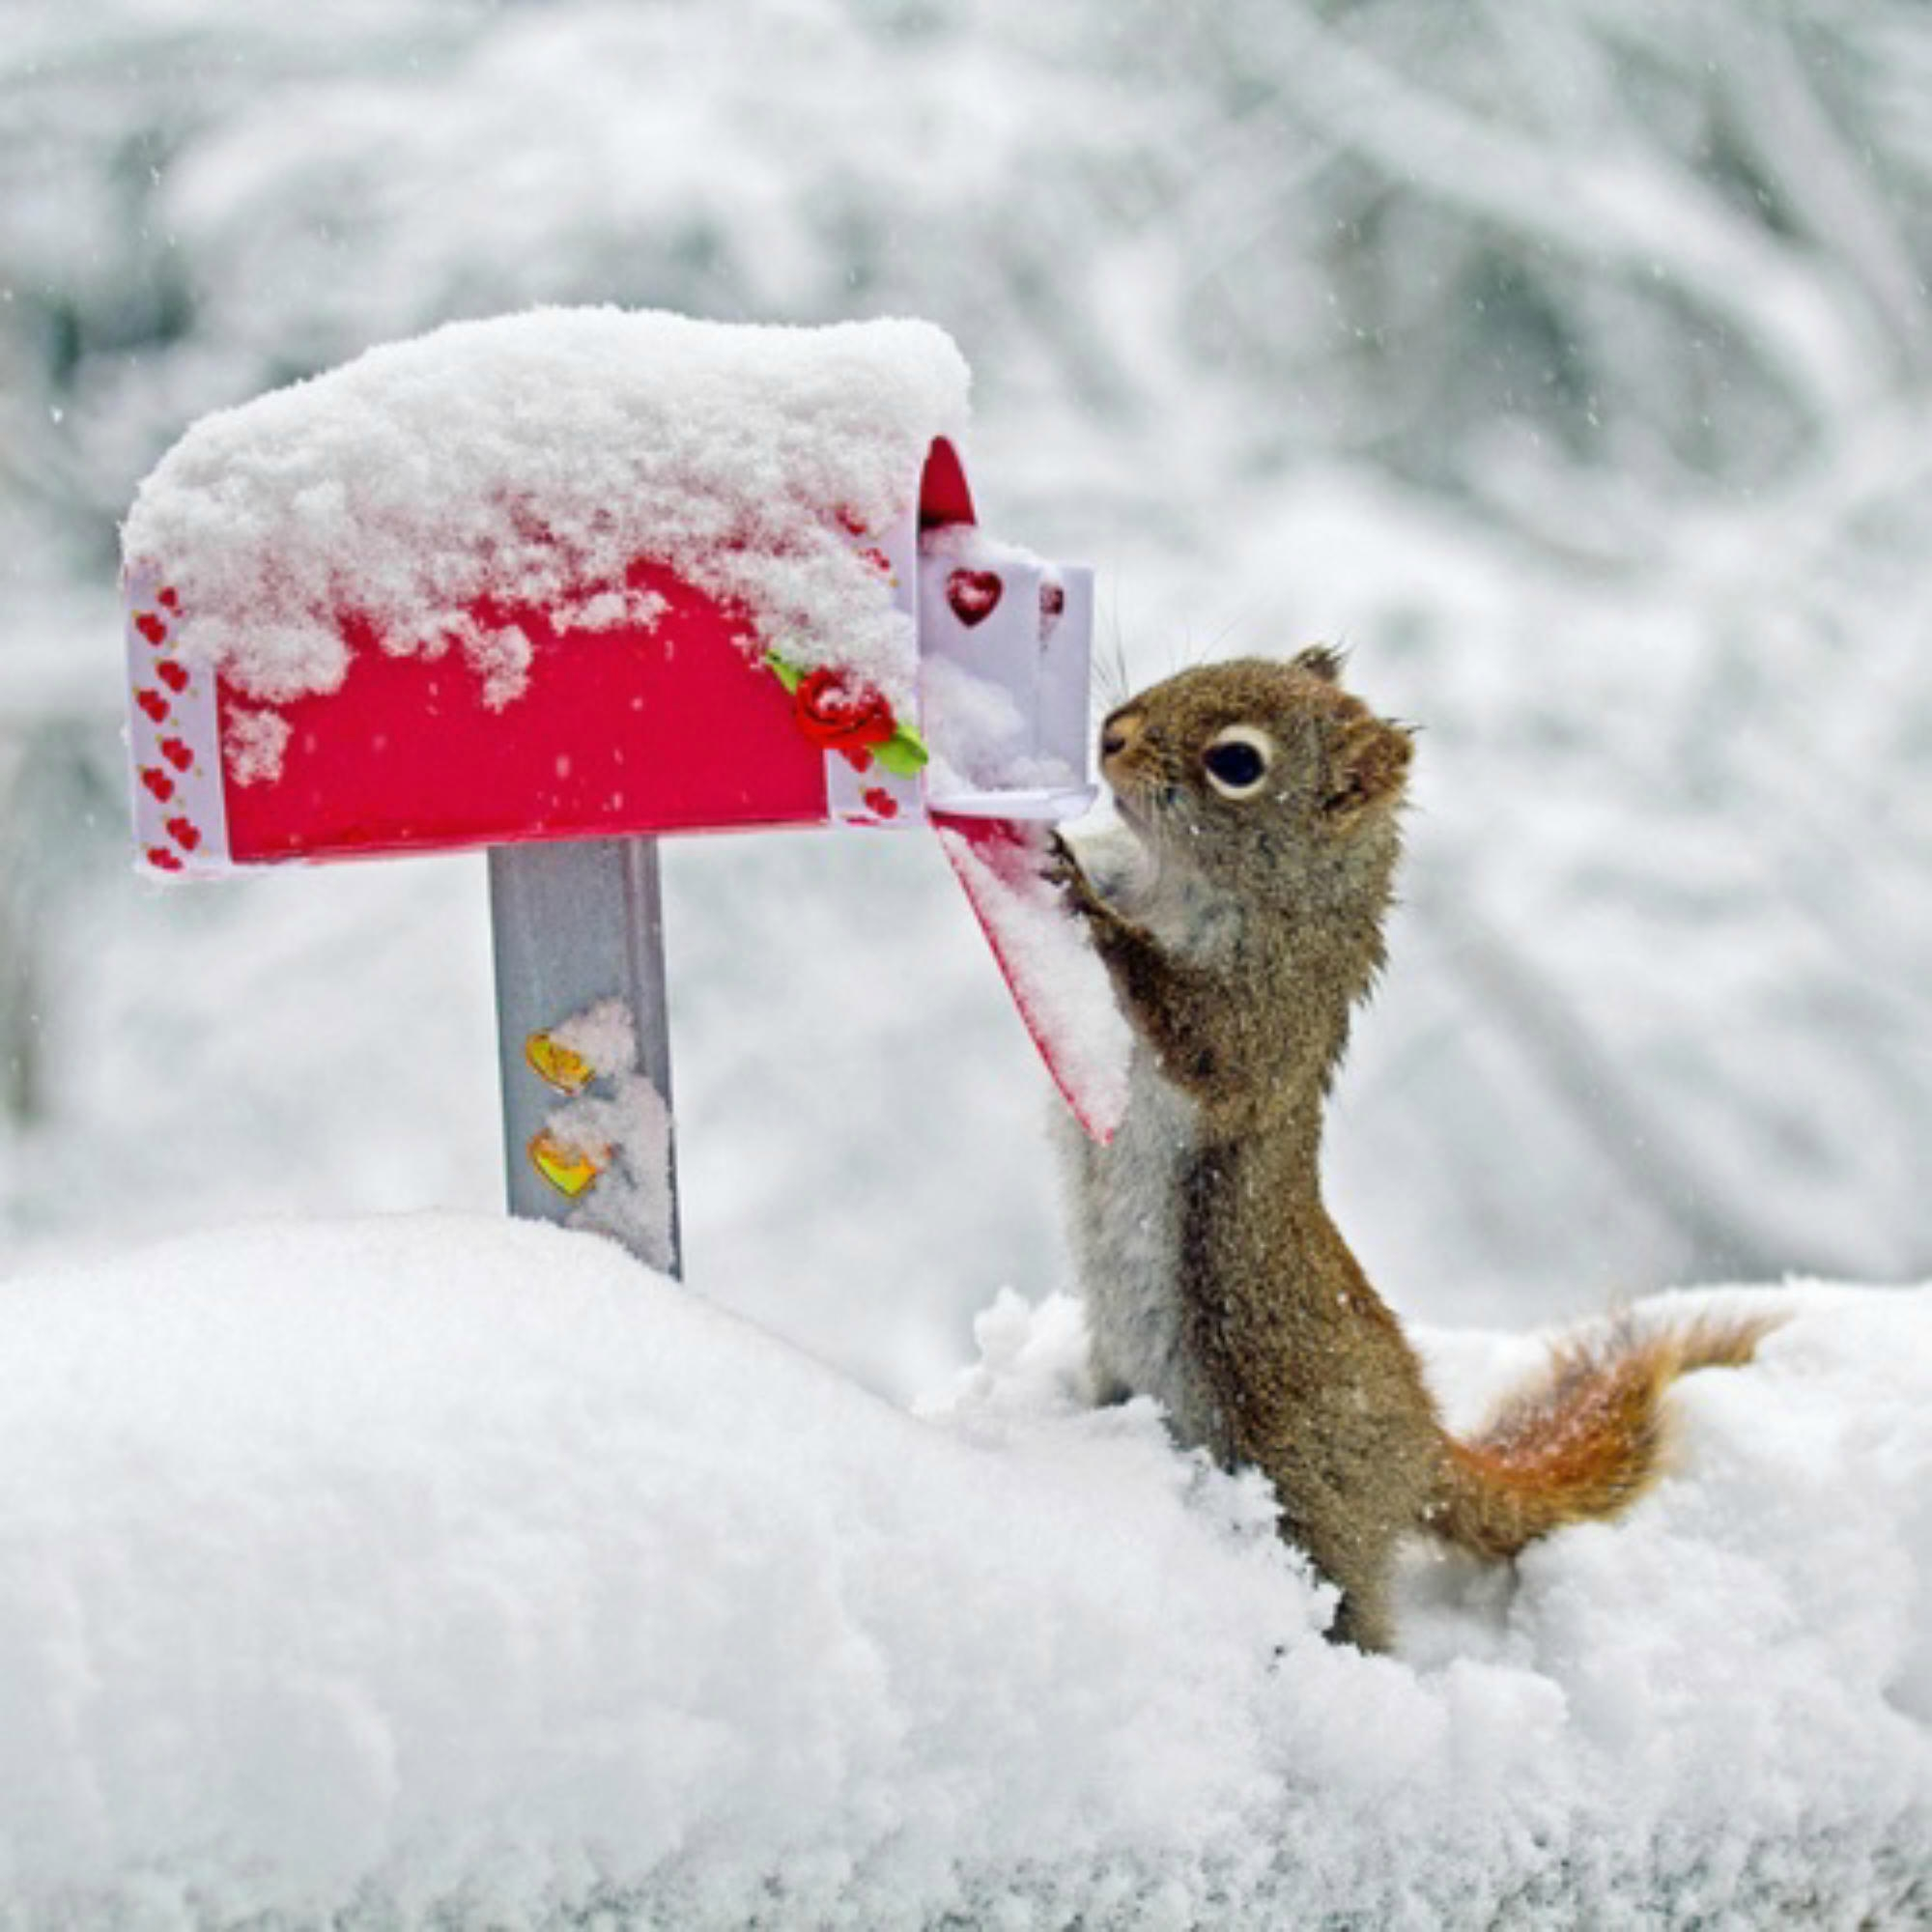 30 Very Funny Squirrel Pictures